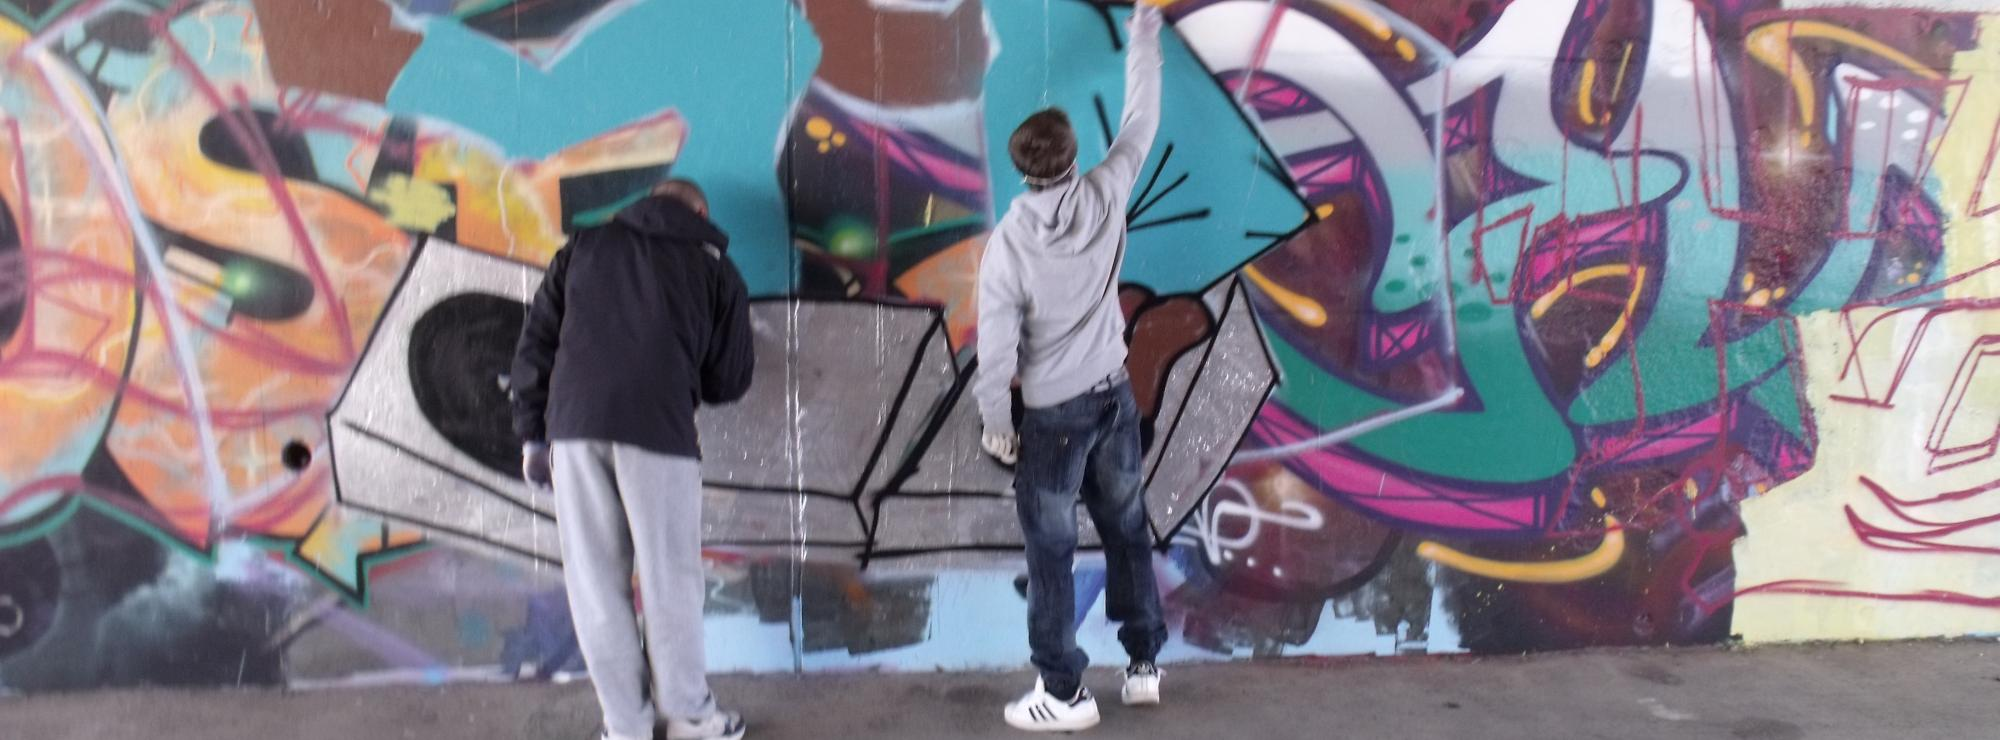 Young people creating urban art